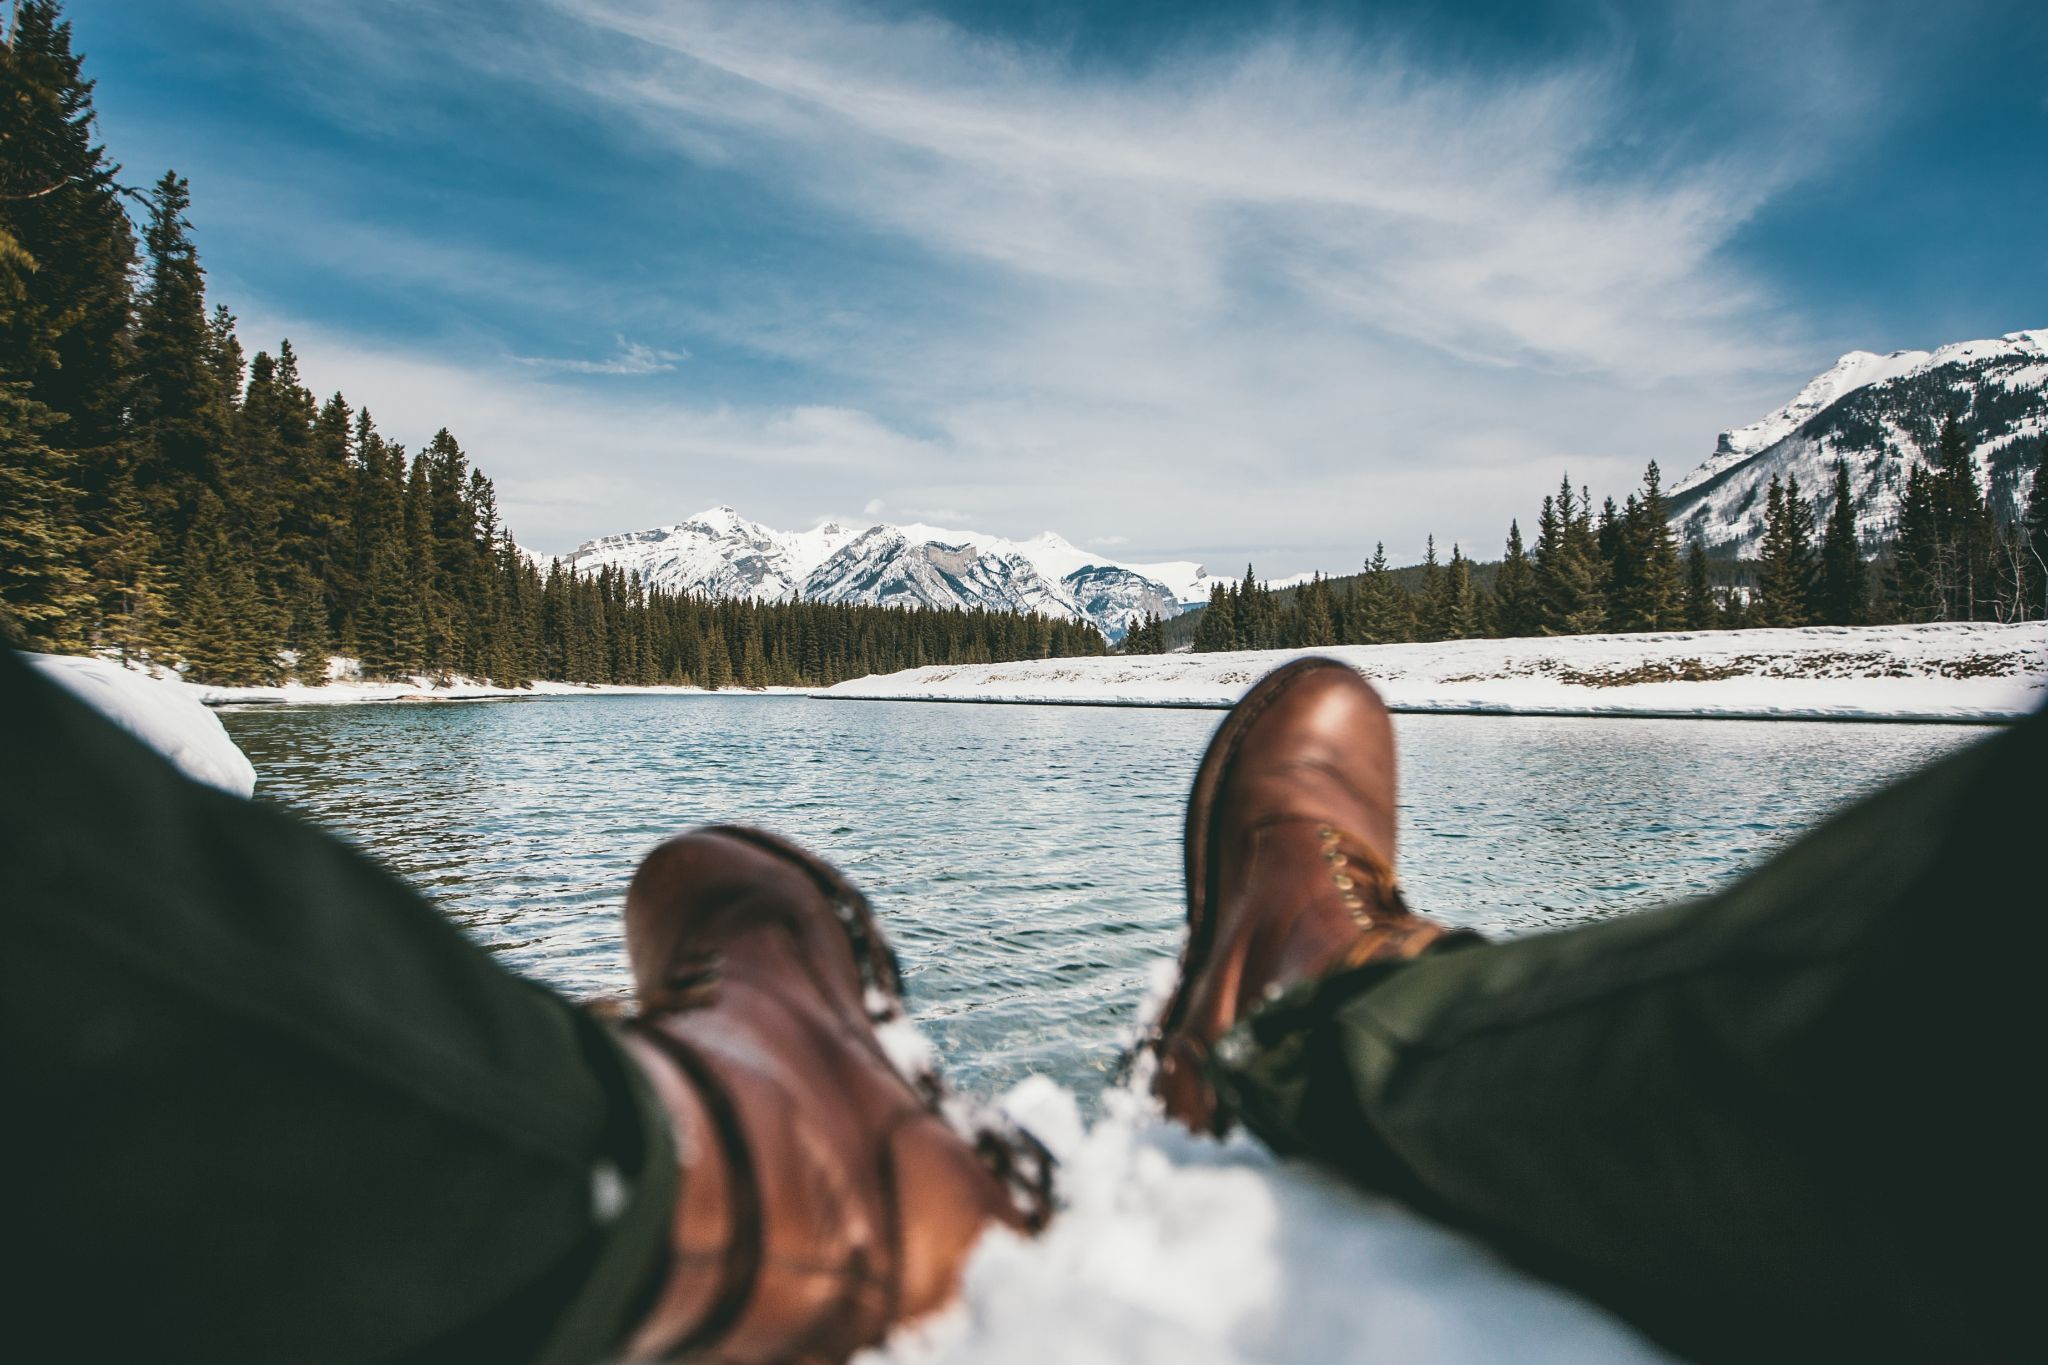 Ice fishing and wading